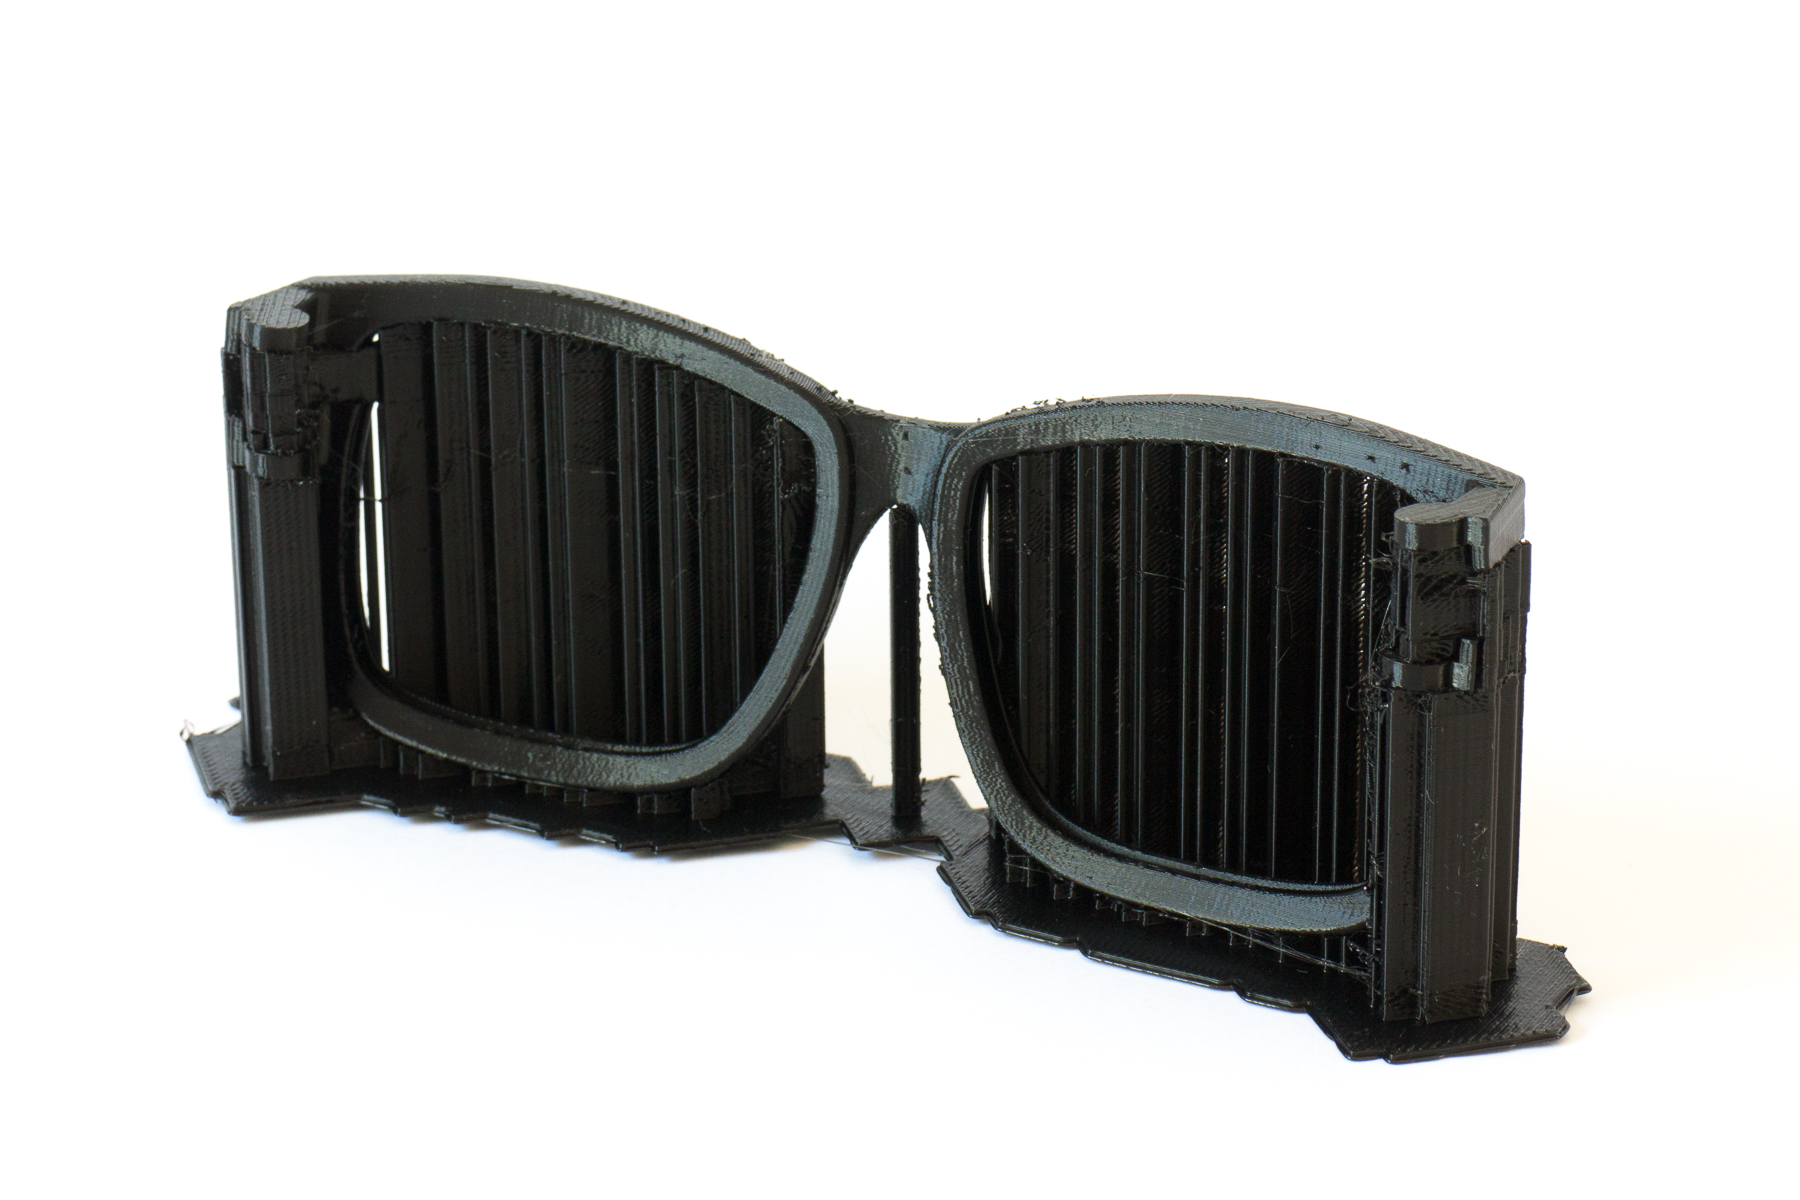 3D printed sunglasses with-supports